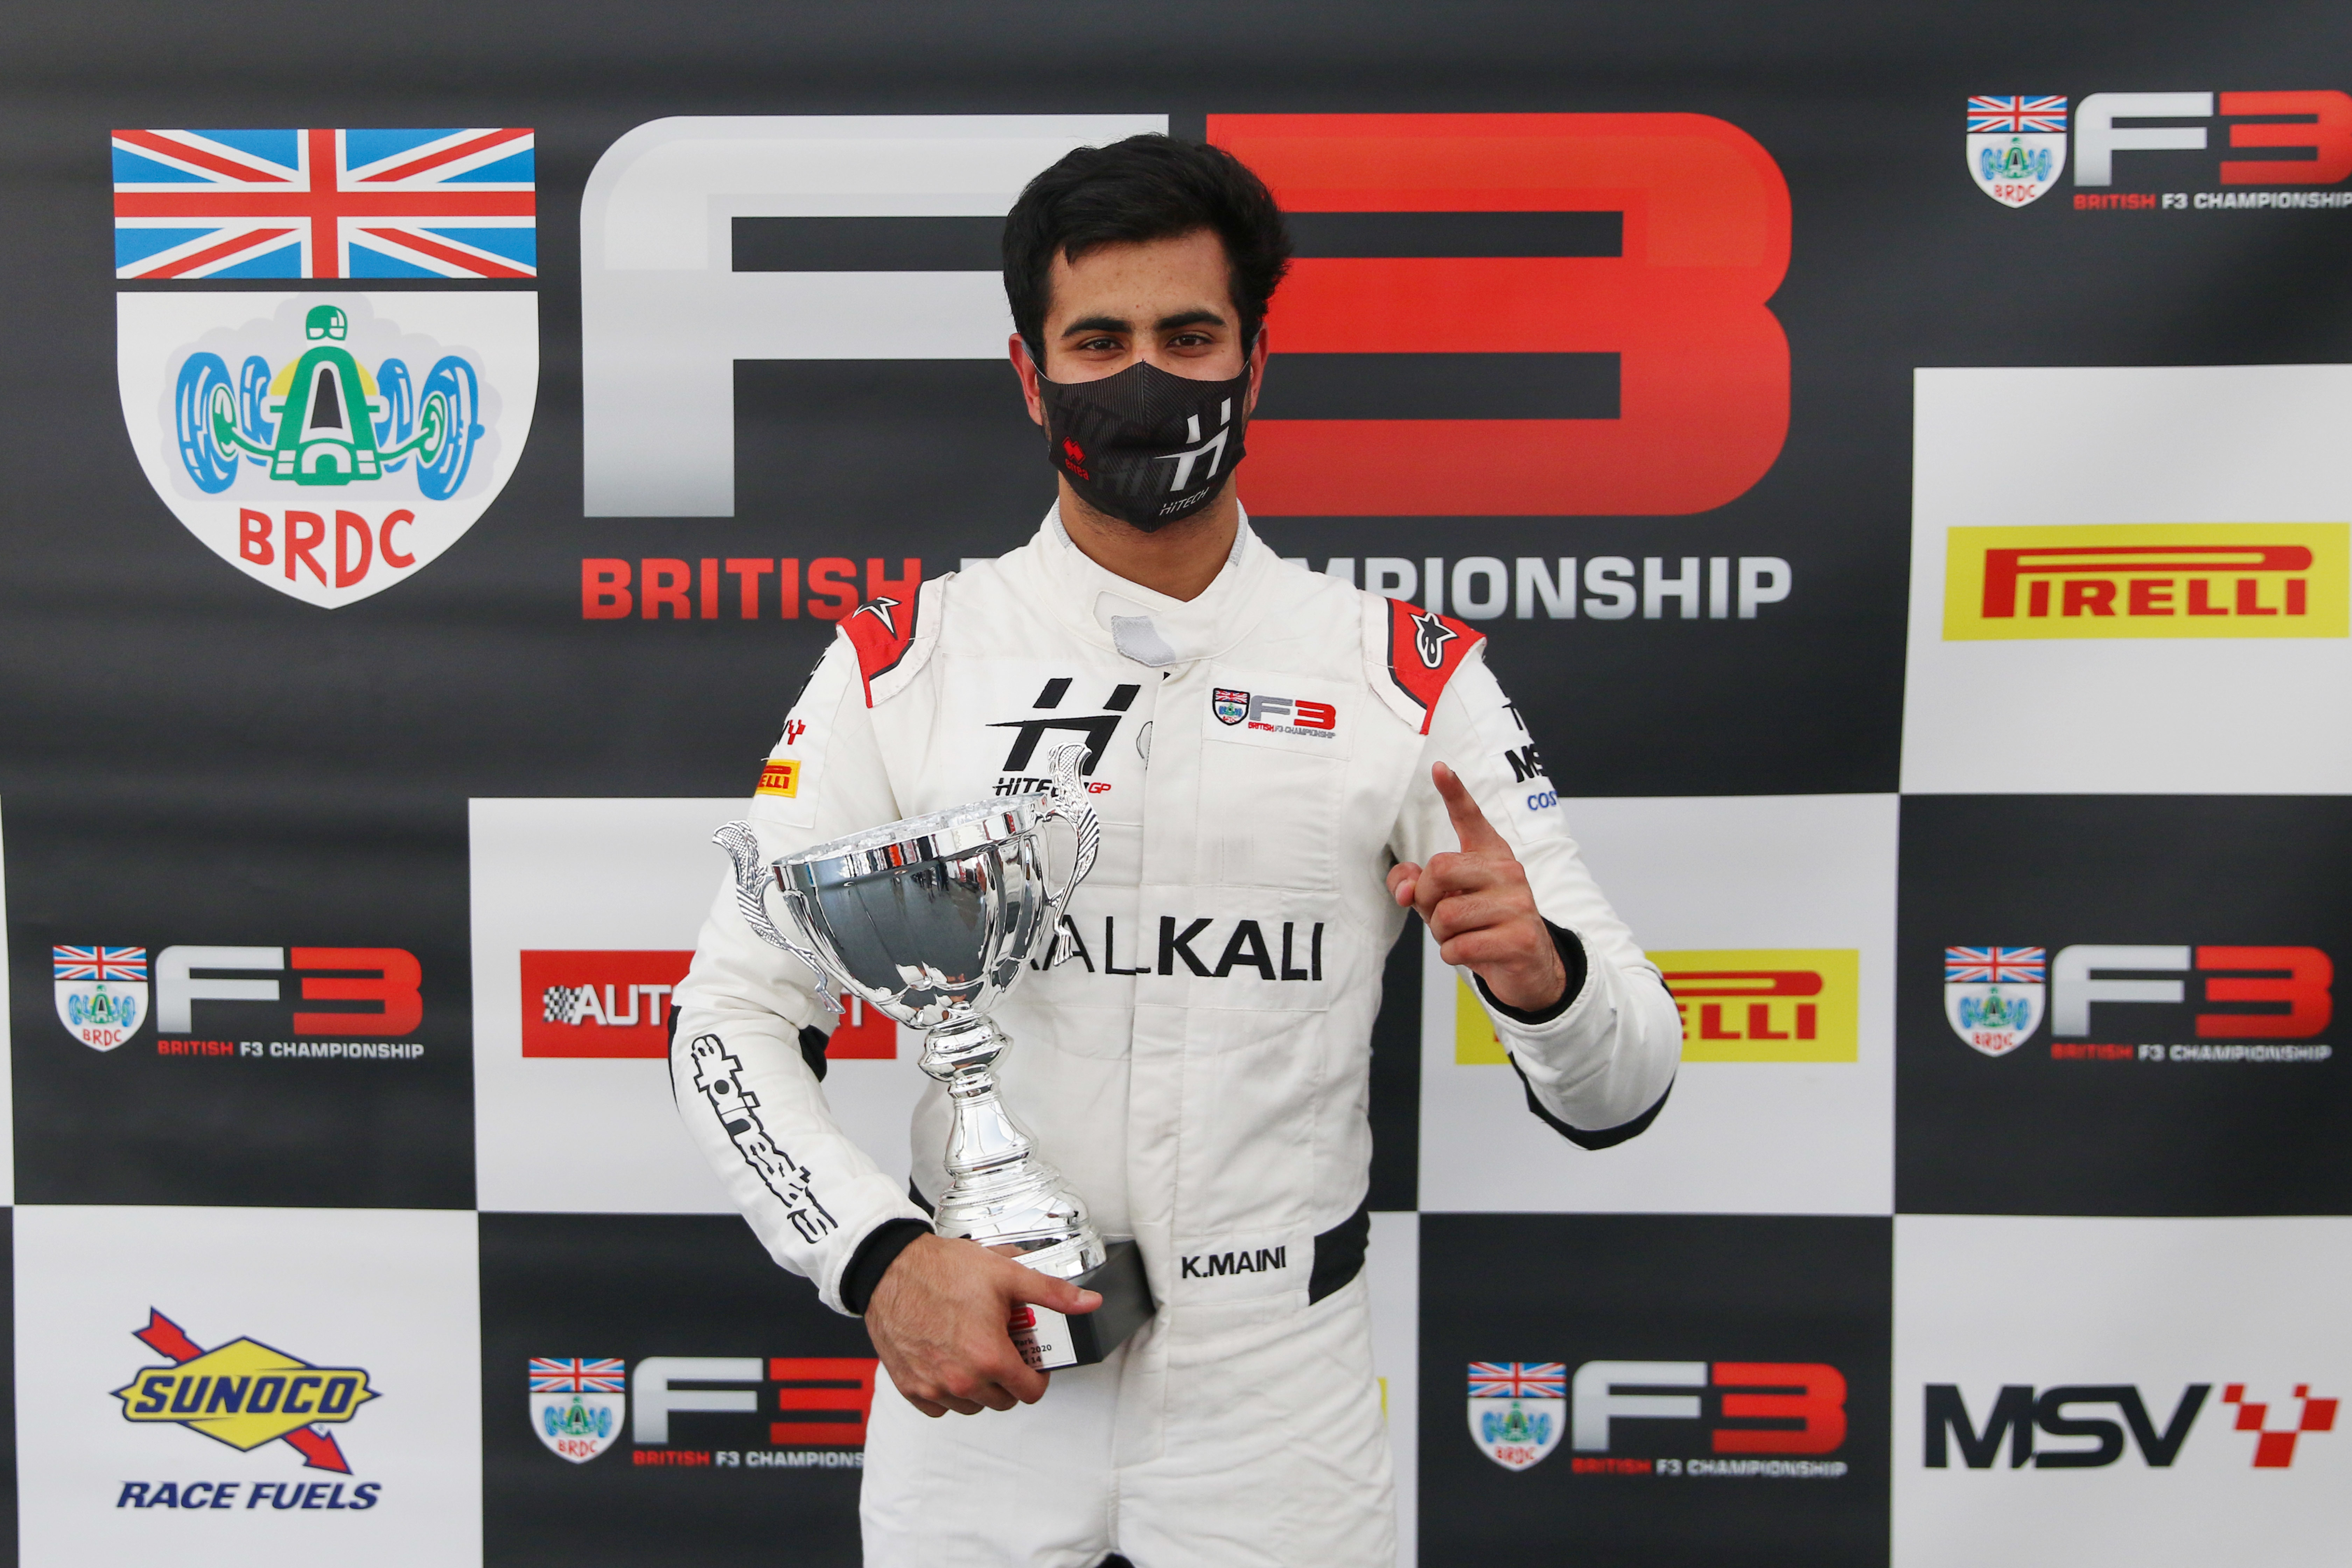 Kush Maini claimed his second win of the year in the British F3 Championship in race three at Donington Park